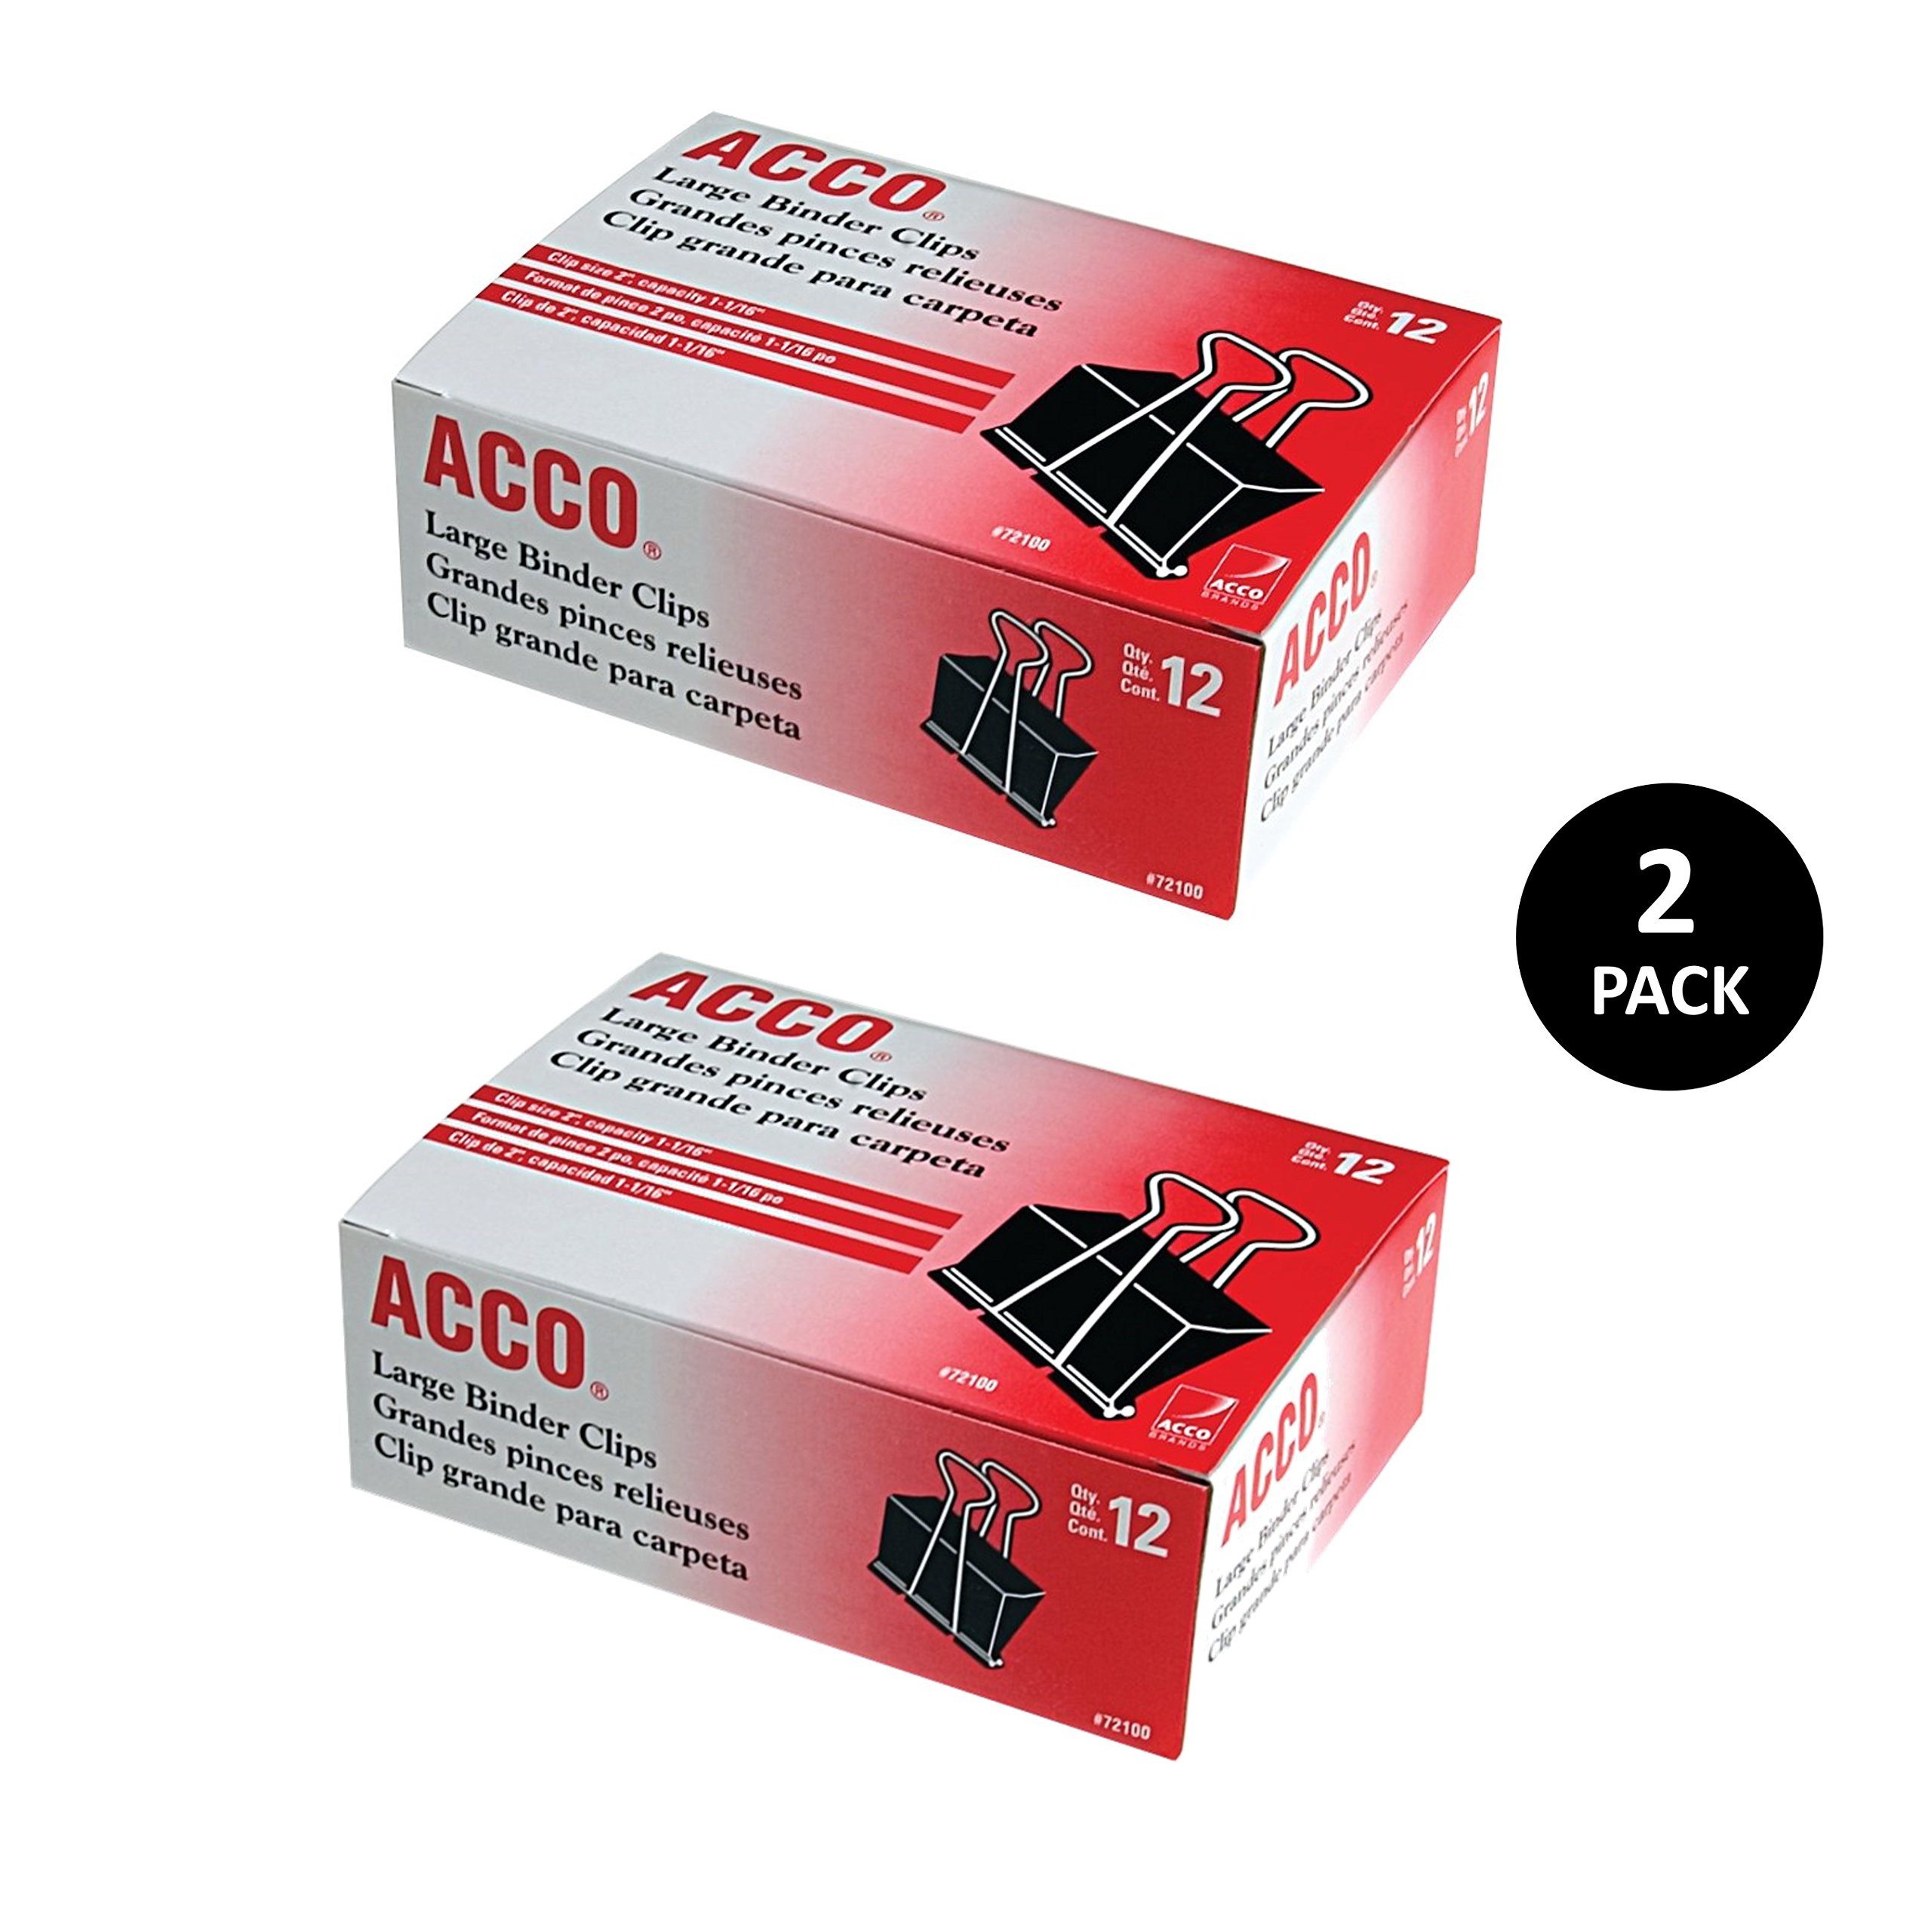 ACCO Binder Clips, Large, 12 Clips/Box, 2 Pack (A7072102)